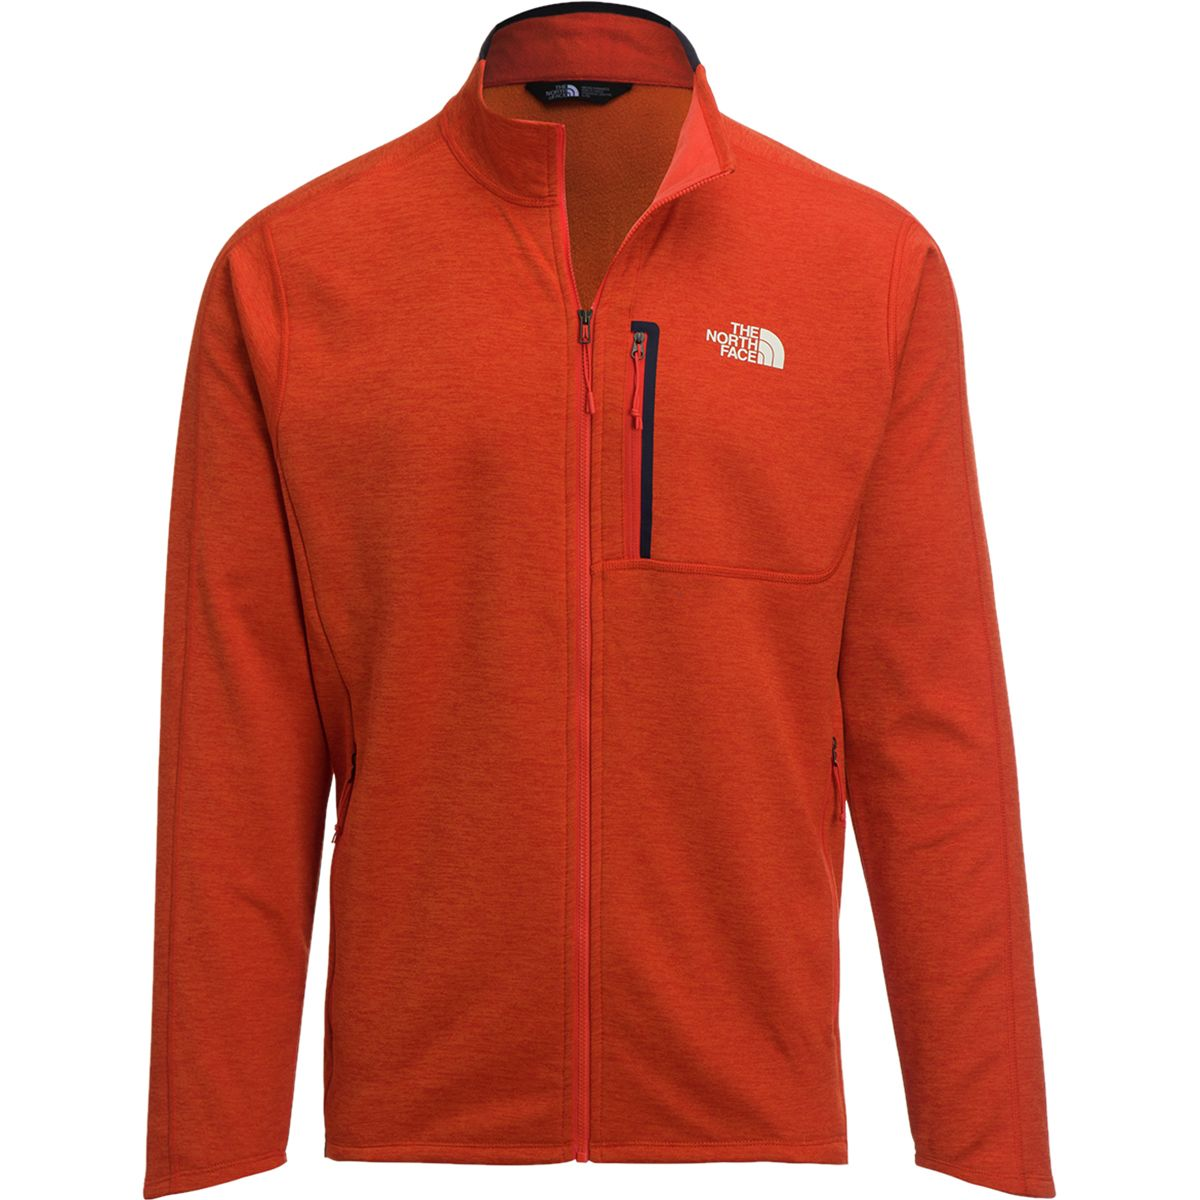 The North Face Canyonlands Full Zip